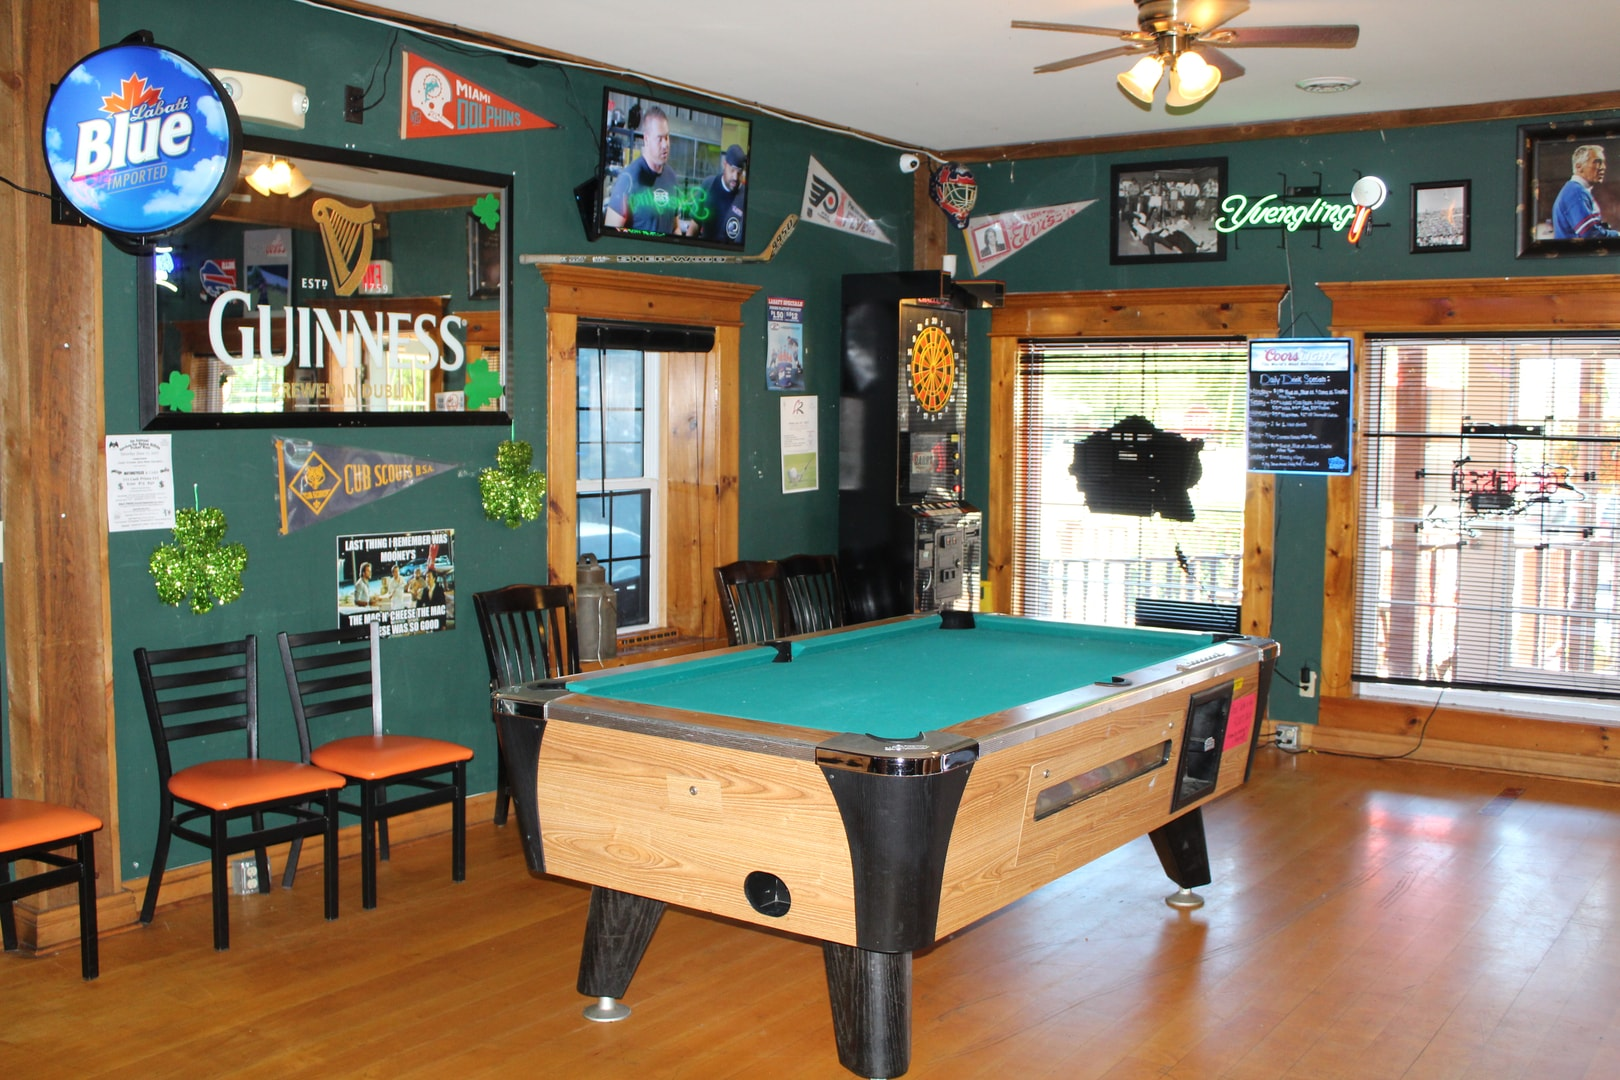 LeRoy Pool Table room with flags on the walls